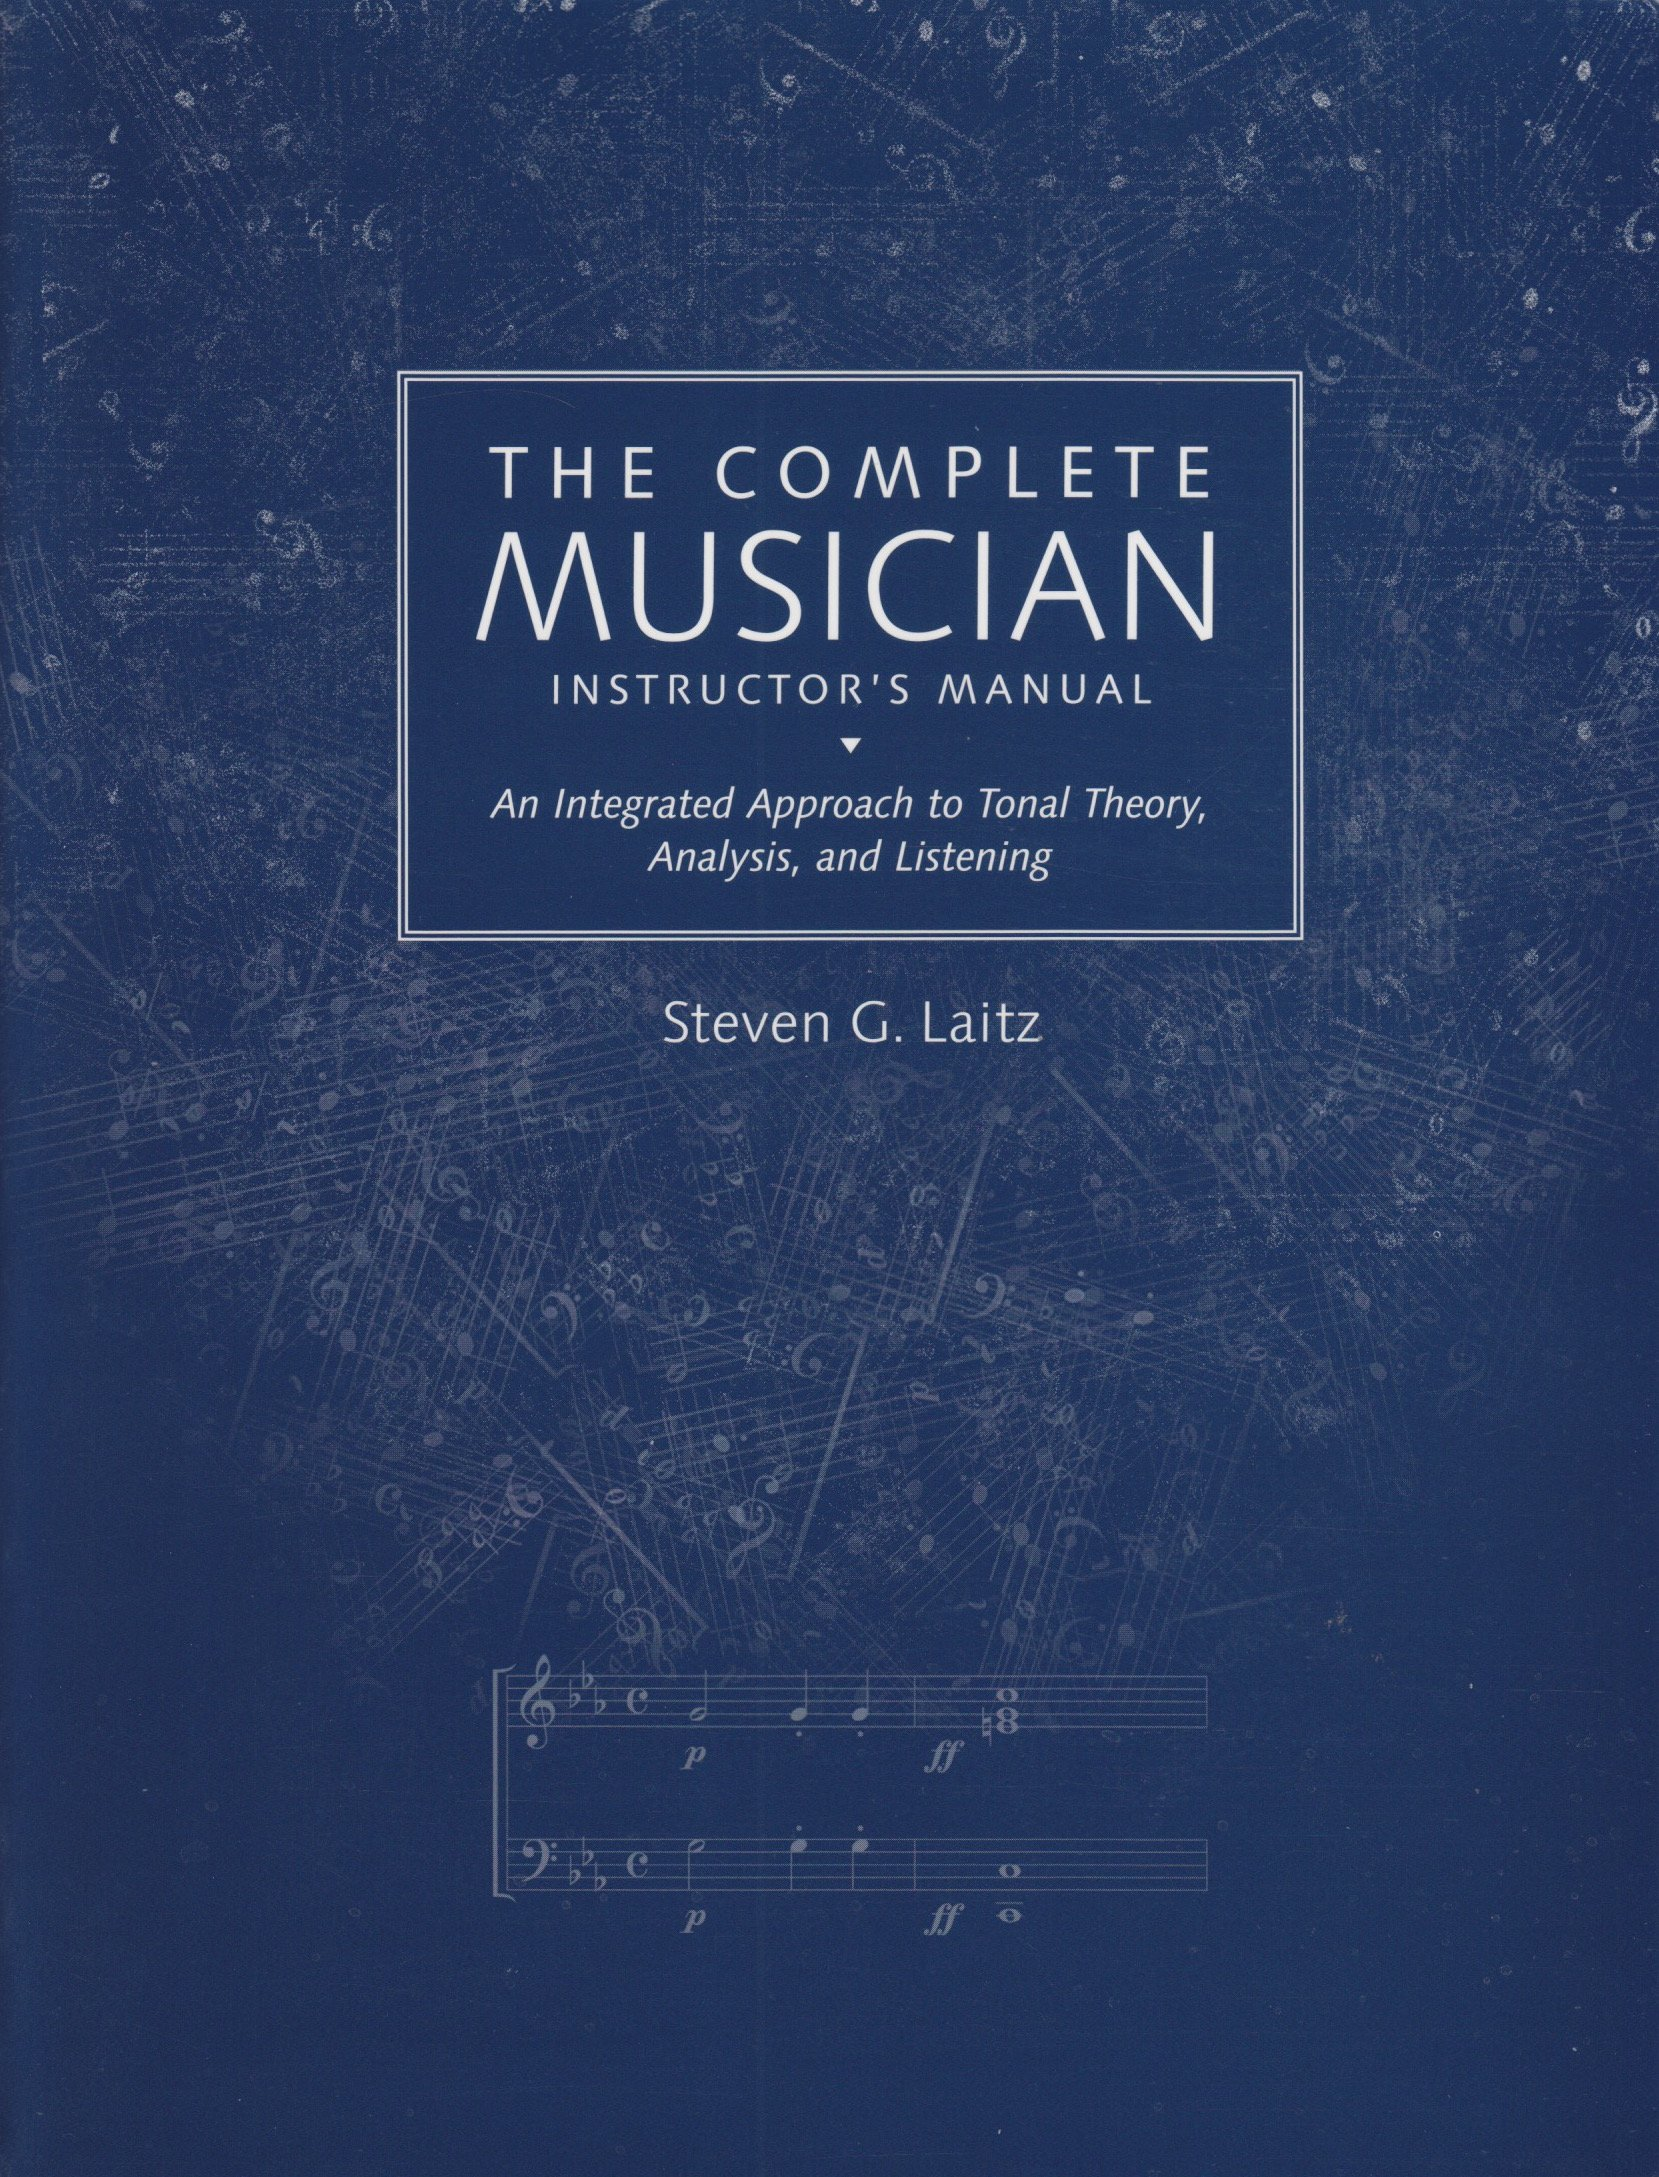 The Complete Musician: Instructor's Manual: Amazon.co.uk: Steven G. Laitz:  9780195095685: Books